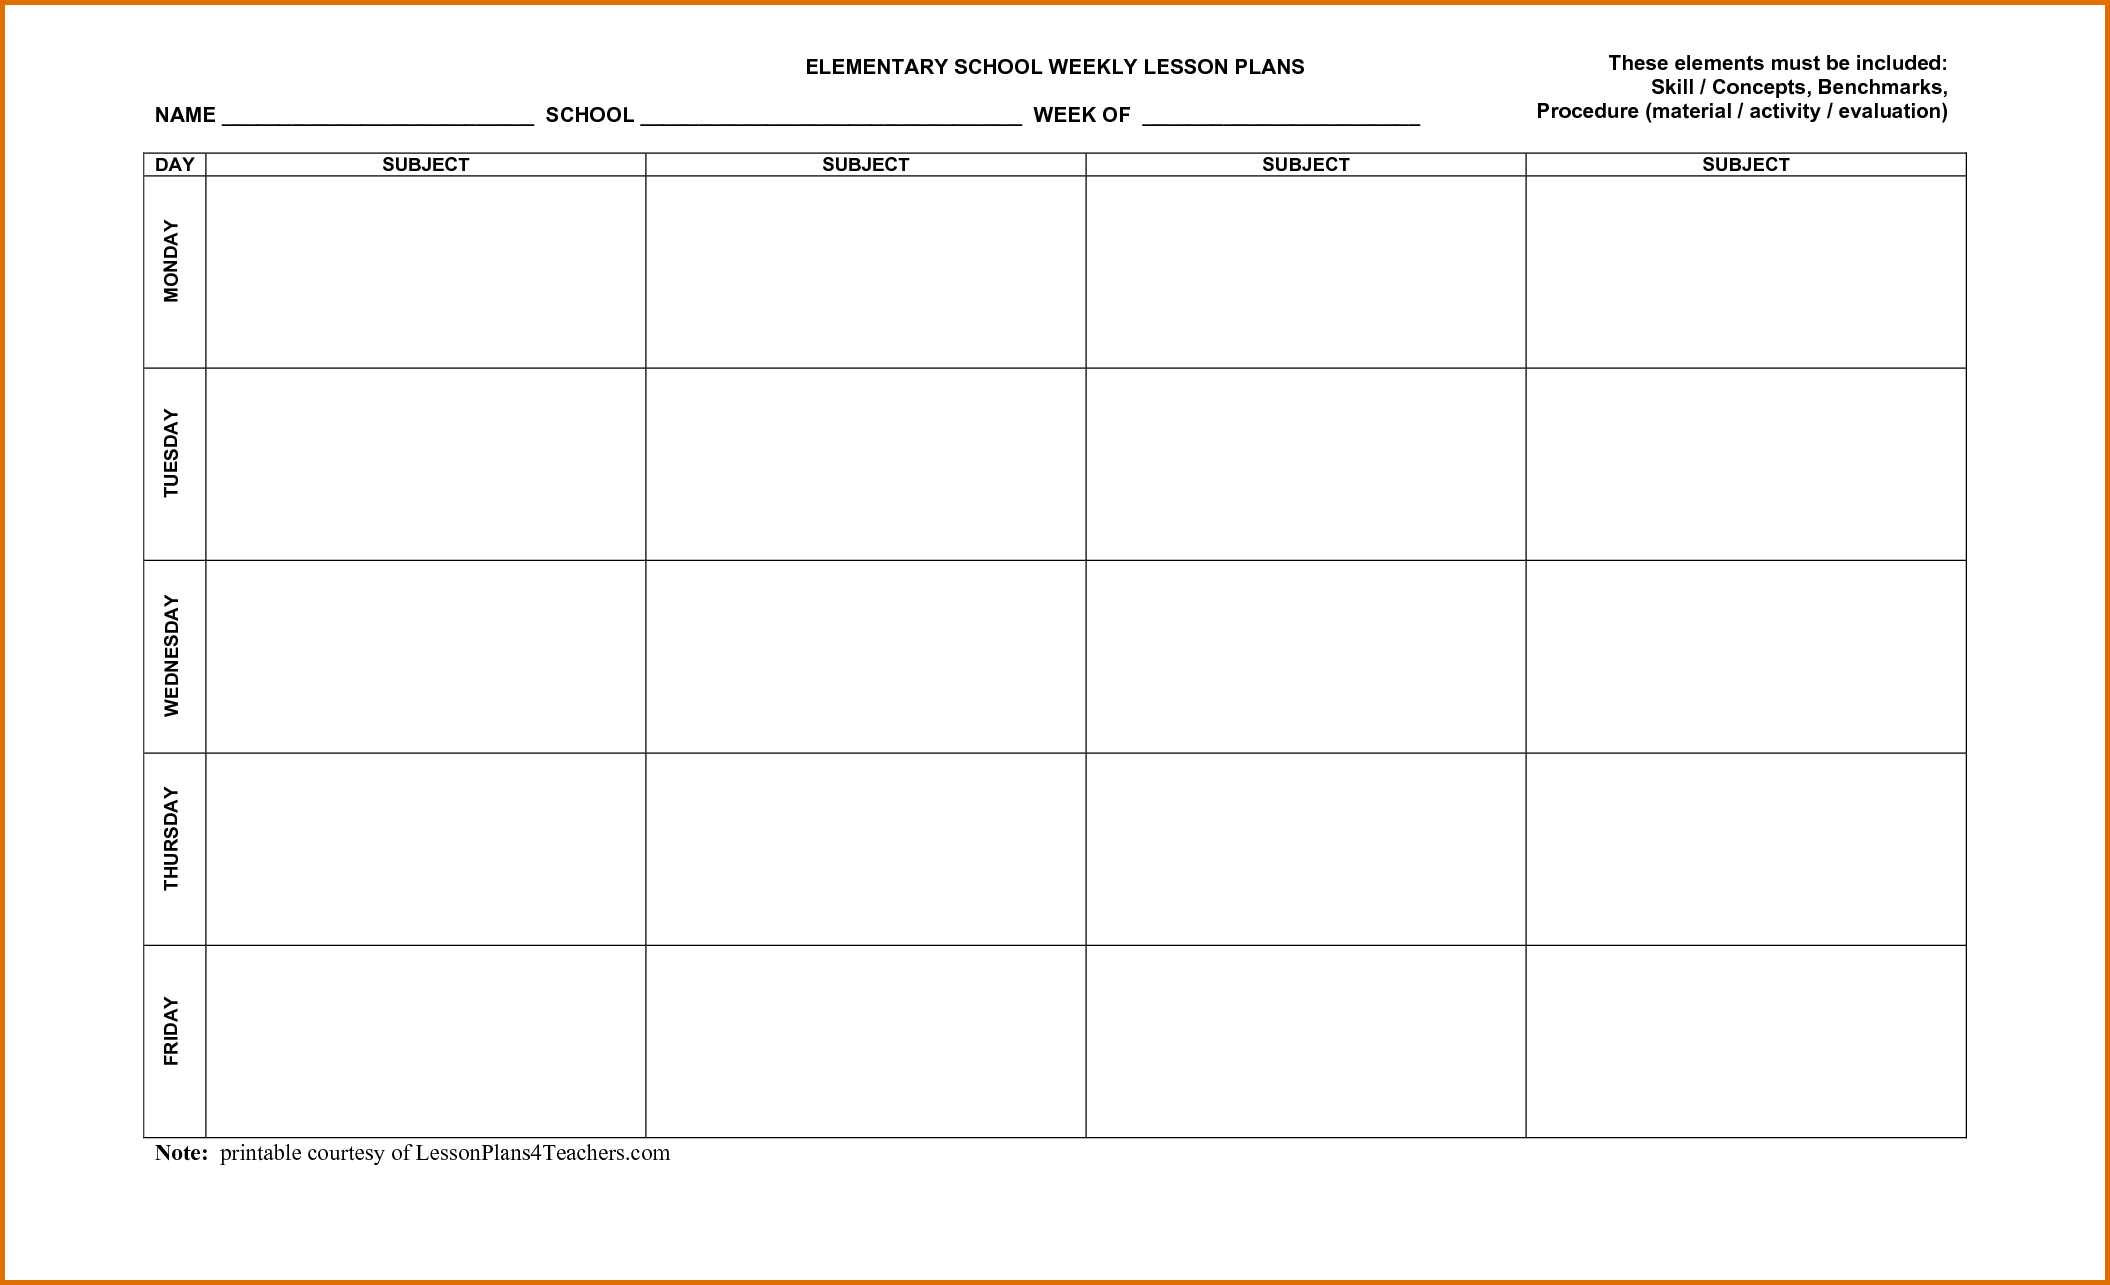 001 Weekly Lesson Plan Template Word Unit ~ Tinypetition